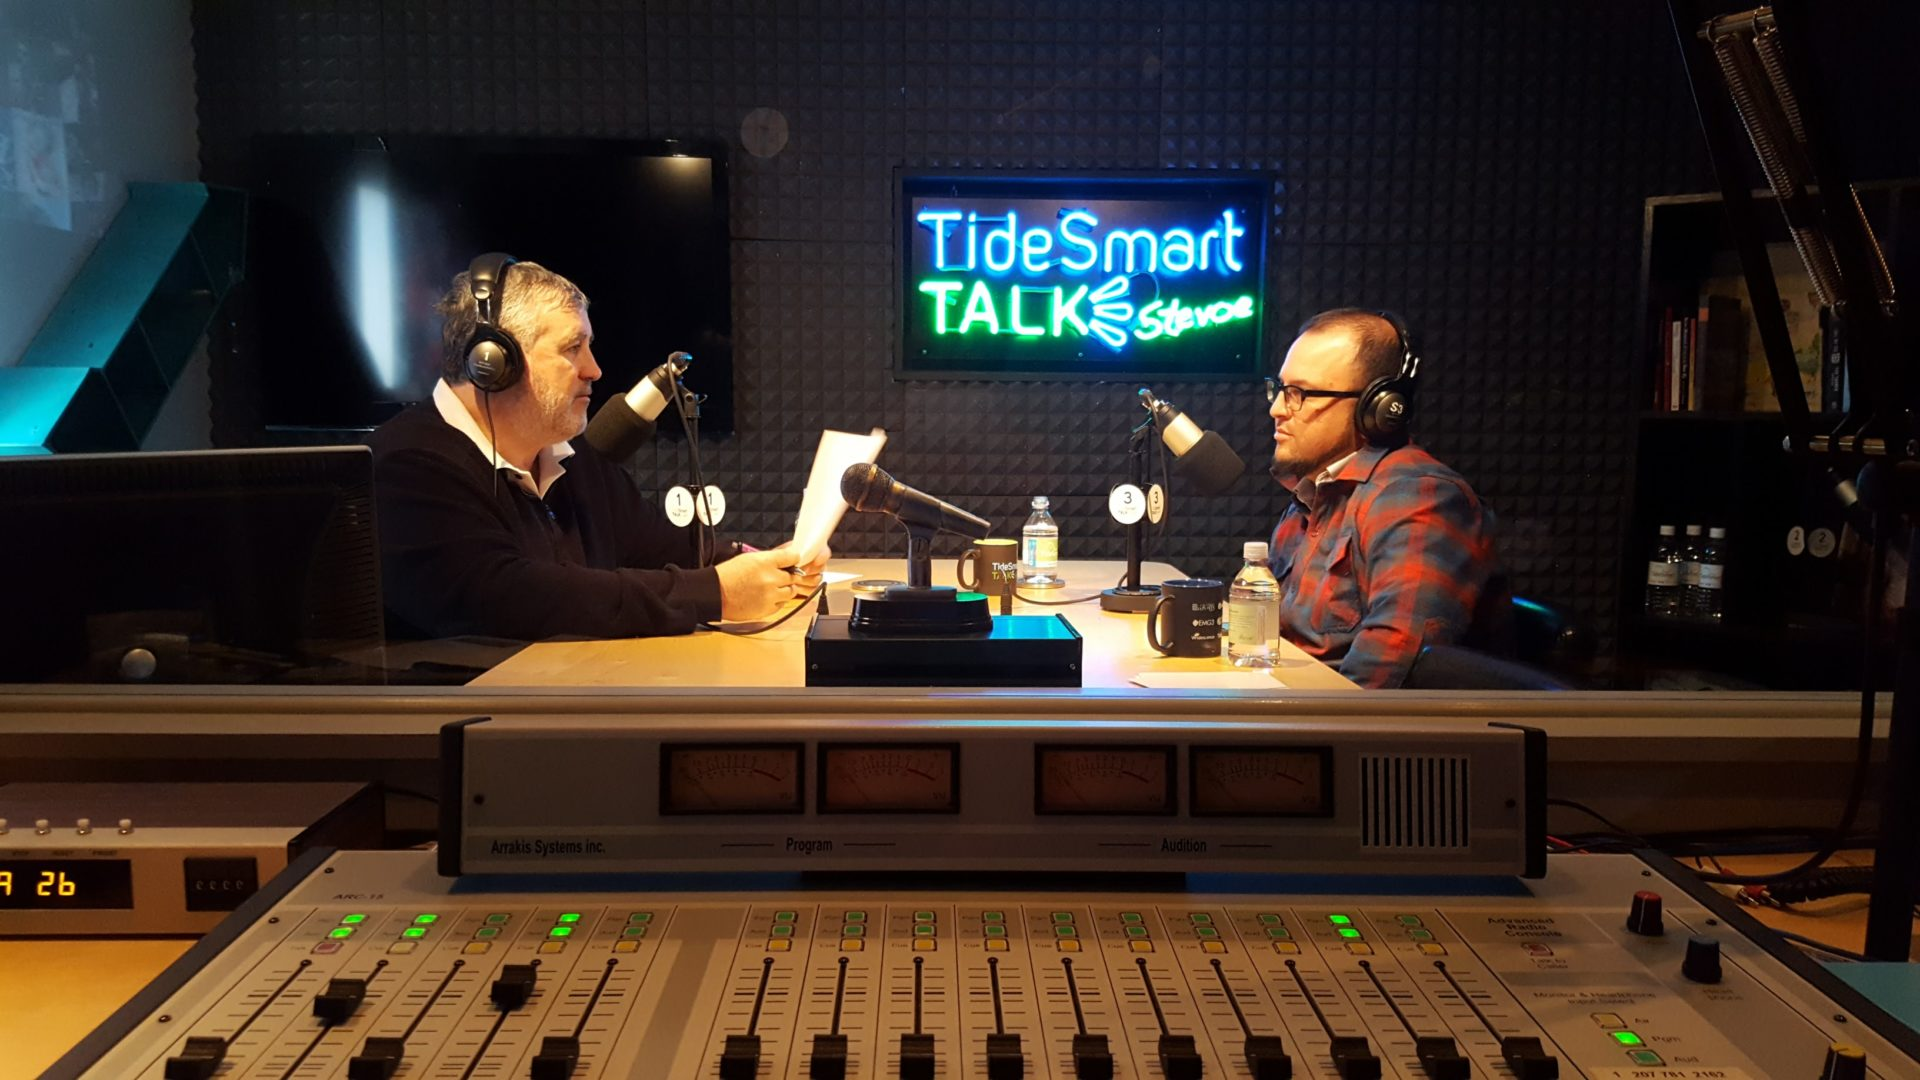 Host of TideSmart Talk with Stevoe, Steve Woods, welcomed Producer of TEDxDirigo, Adam Burk (at right).